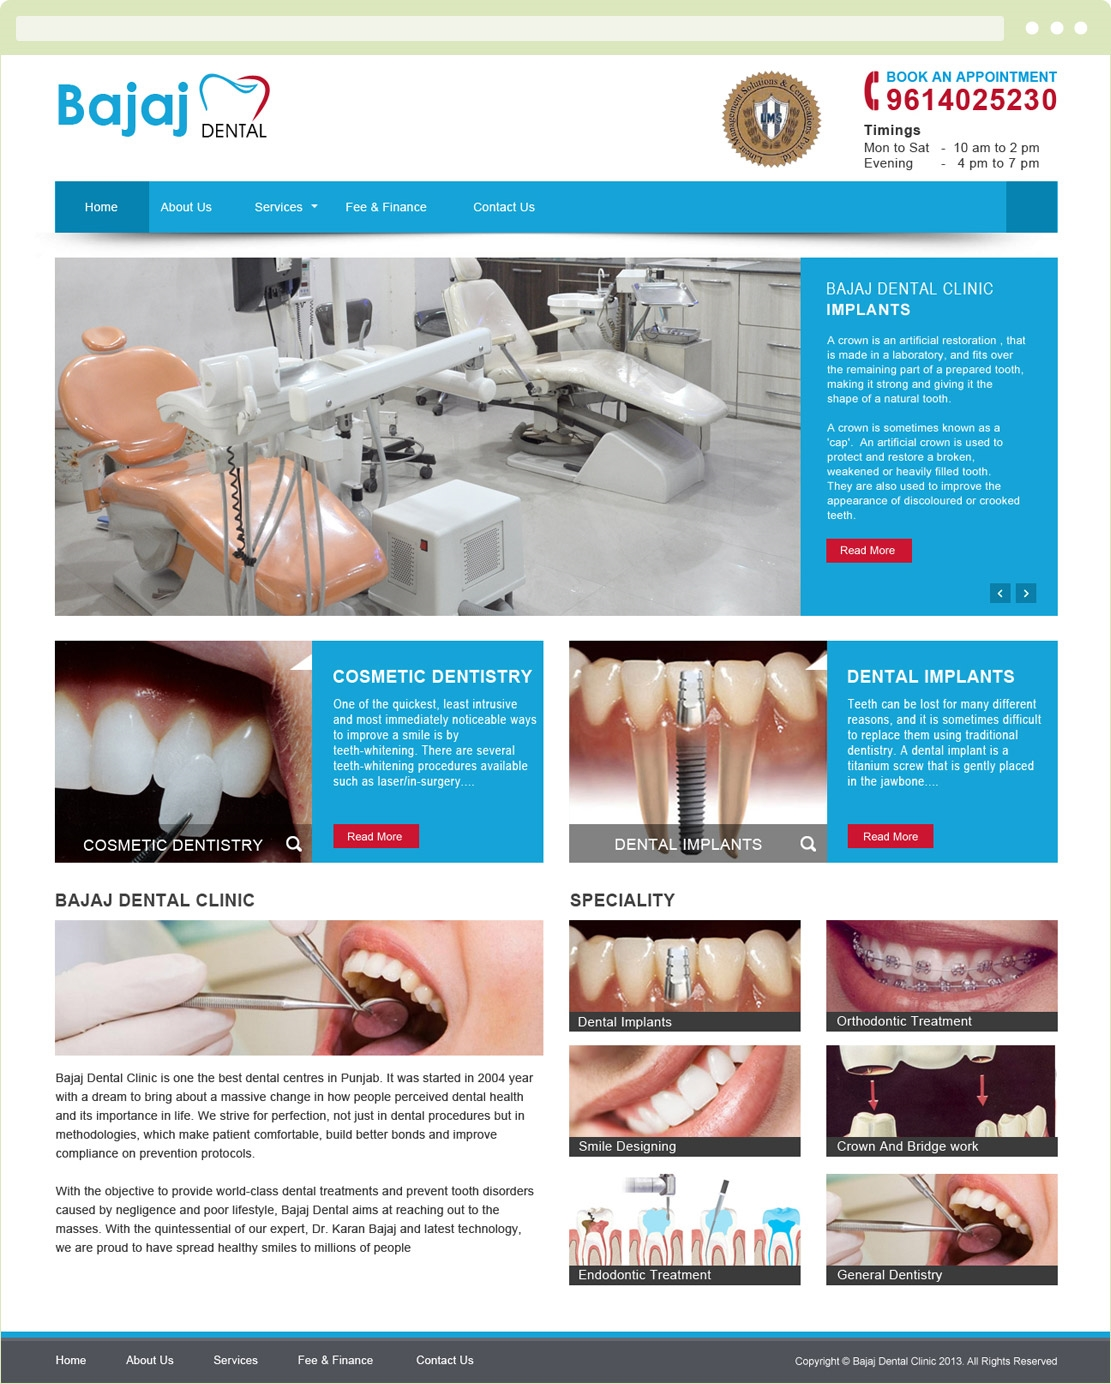 Bajaj Dental